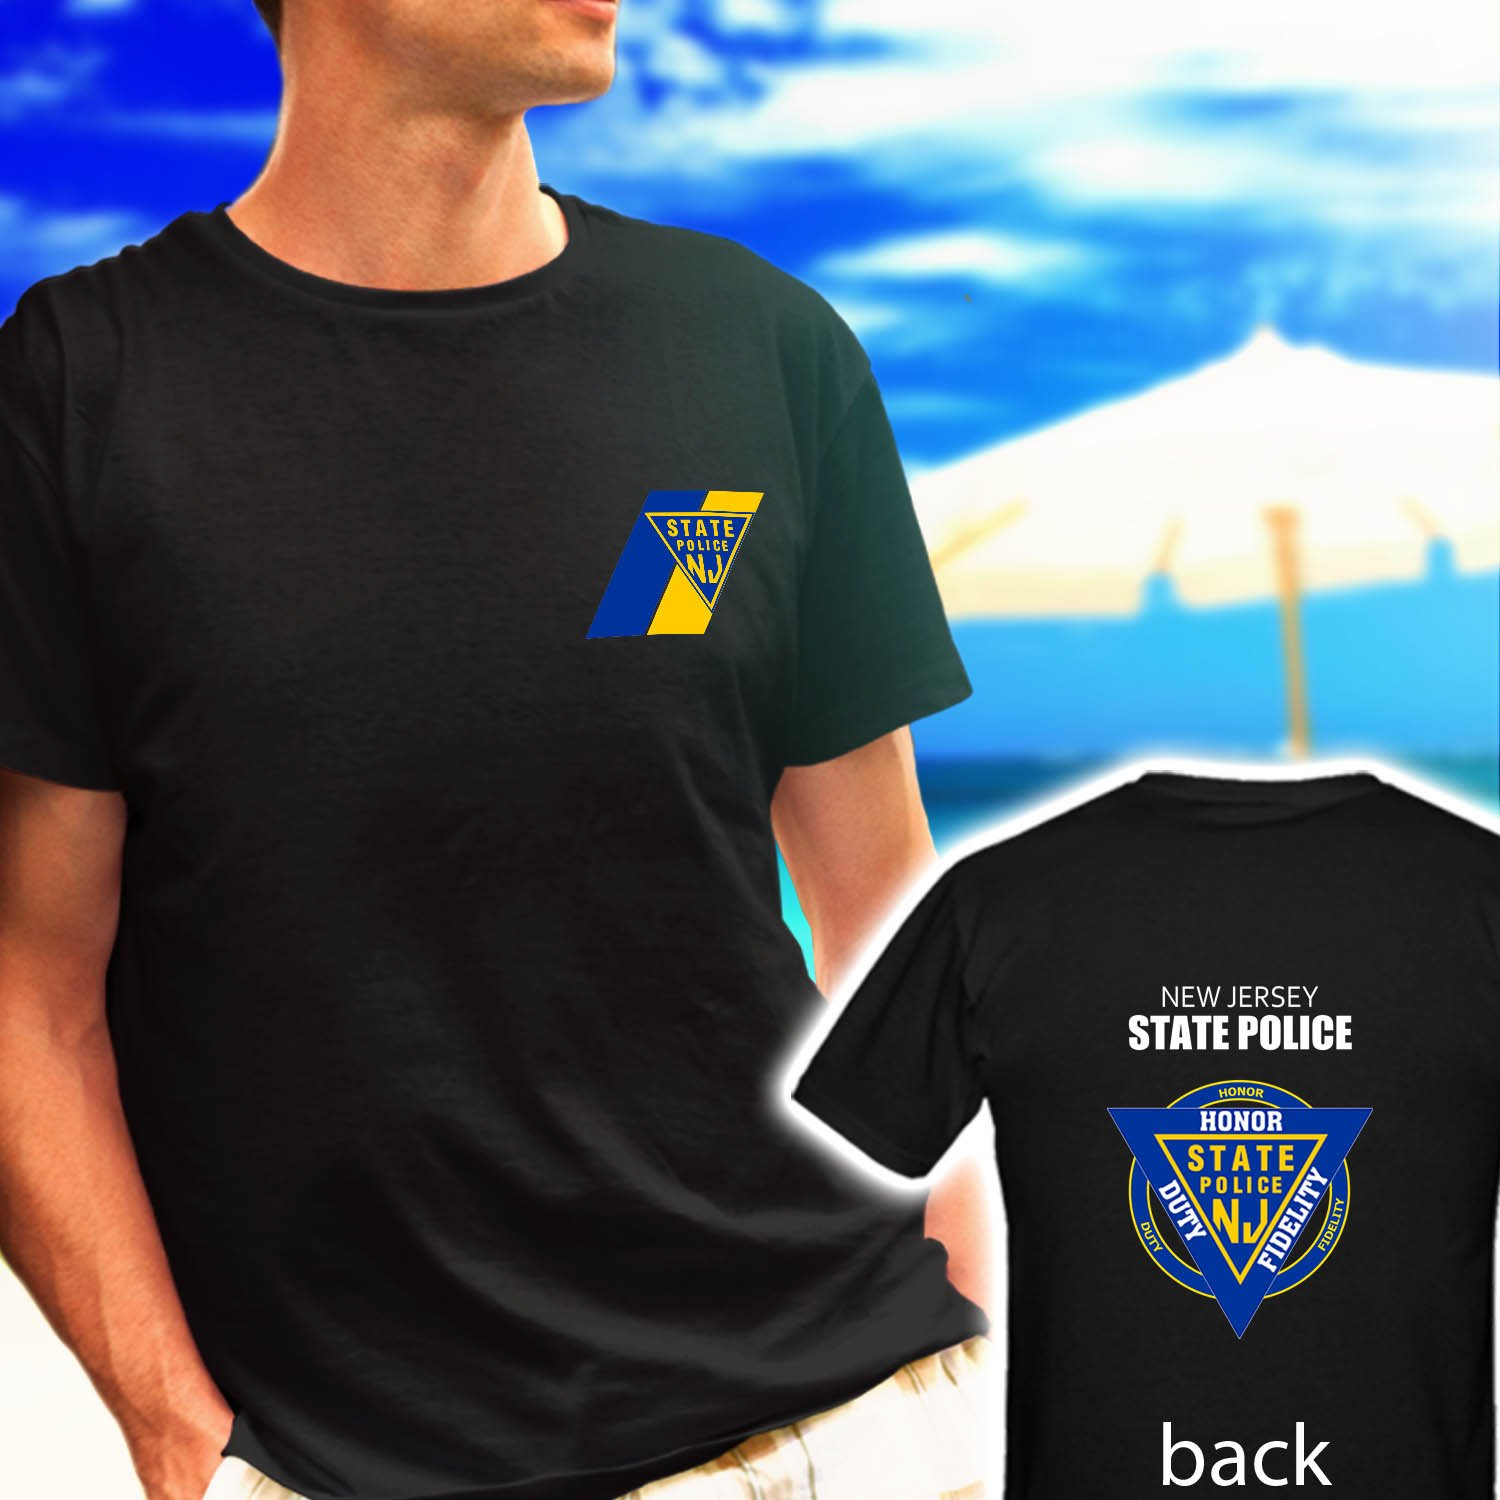 NEW JERSEY STATE POLICE HONOR DUTY FIDELITY black t-shirt tshirt shirts tee SIZE 2XL